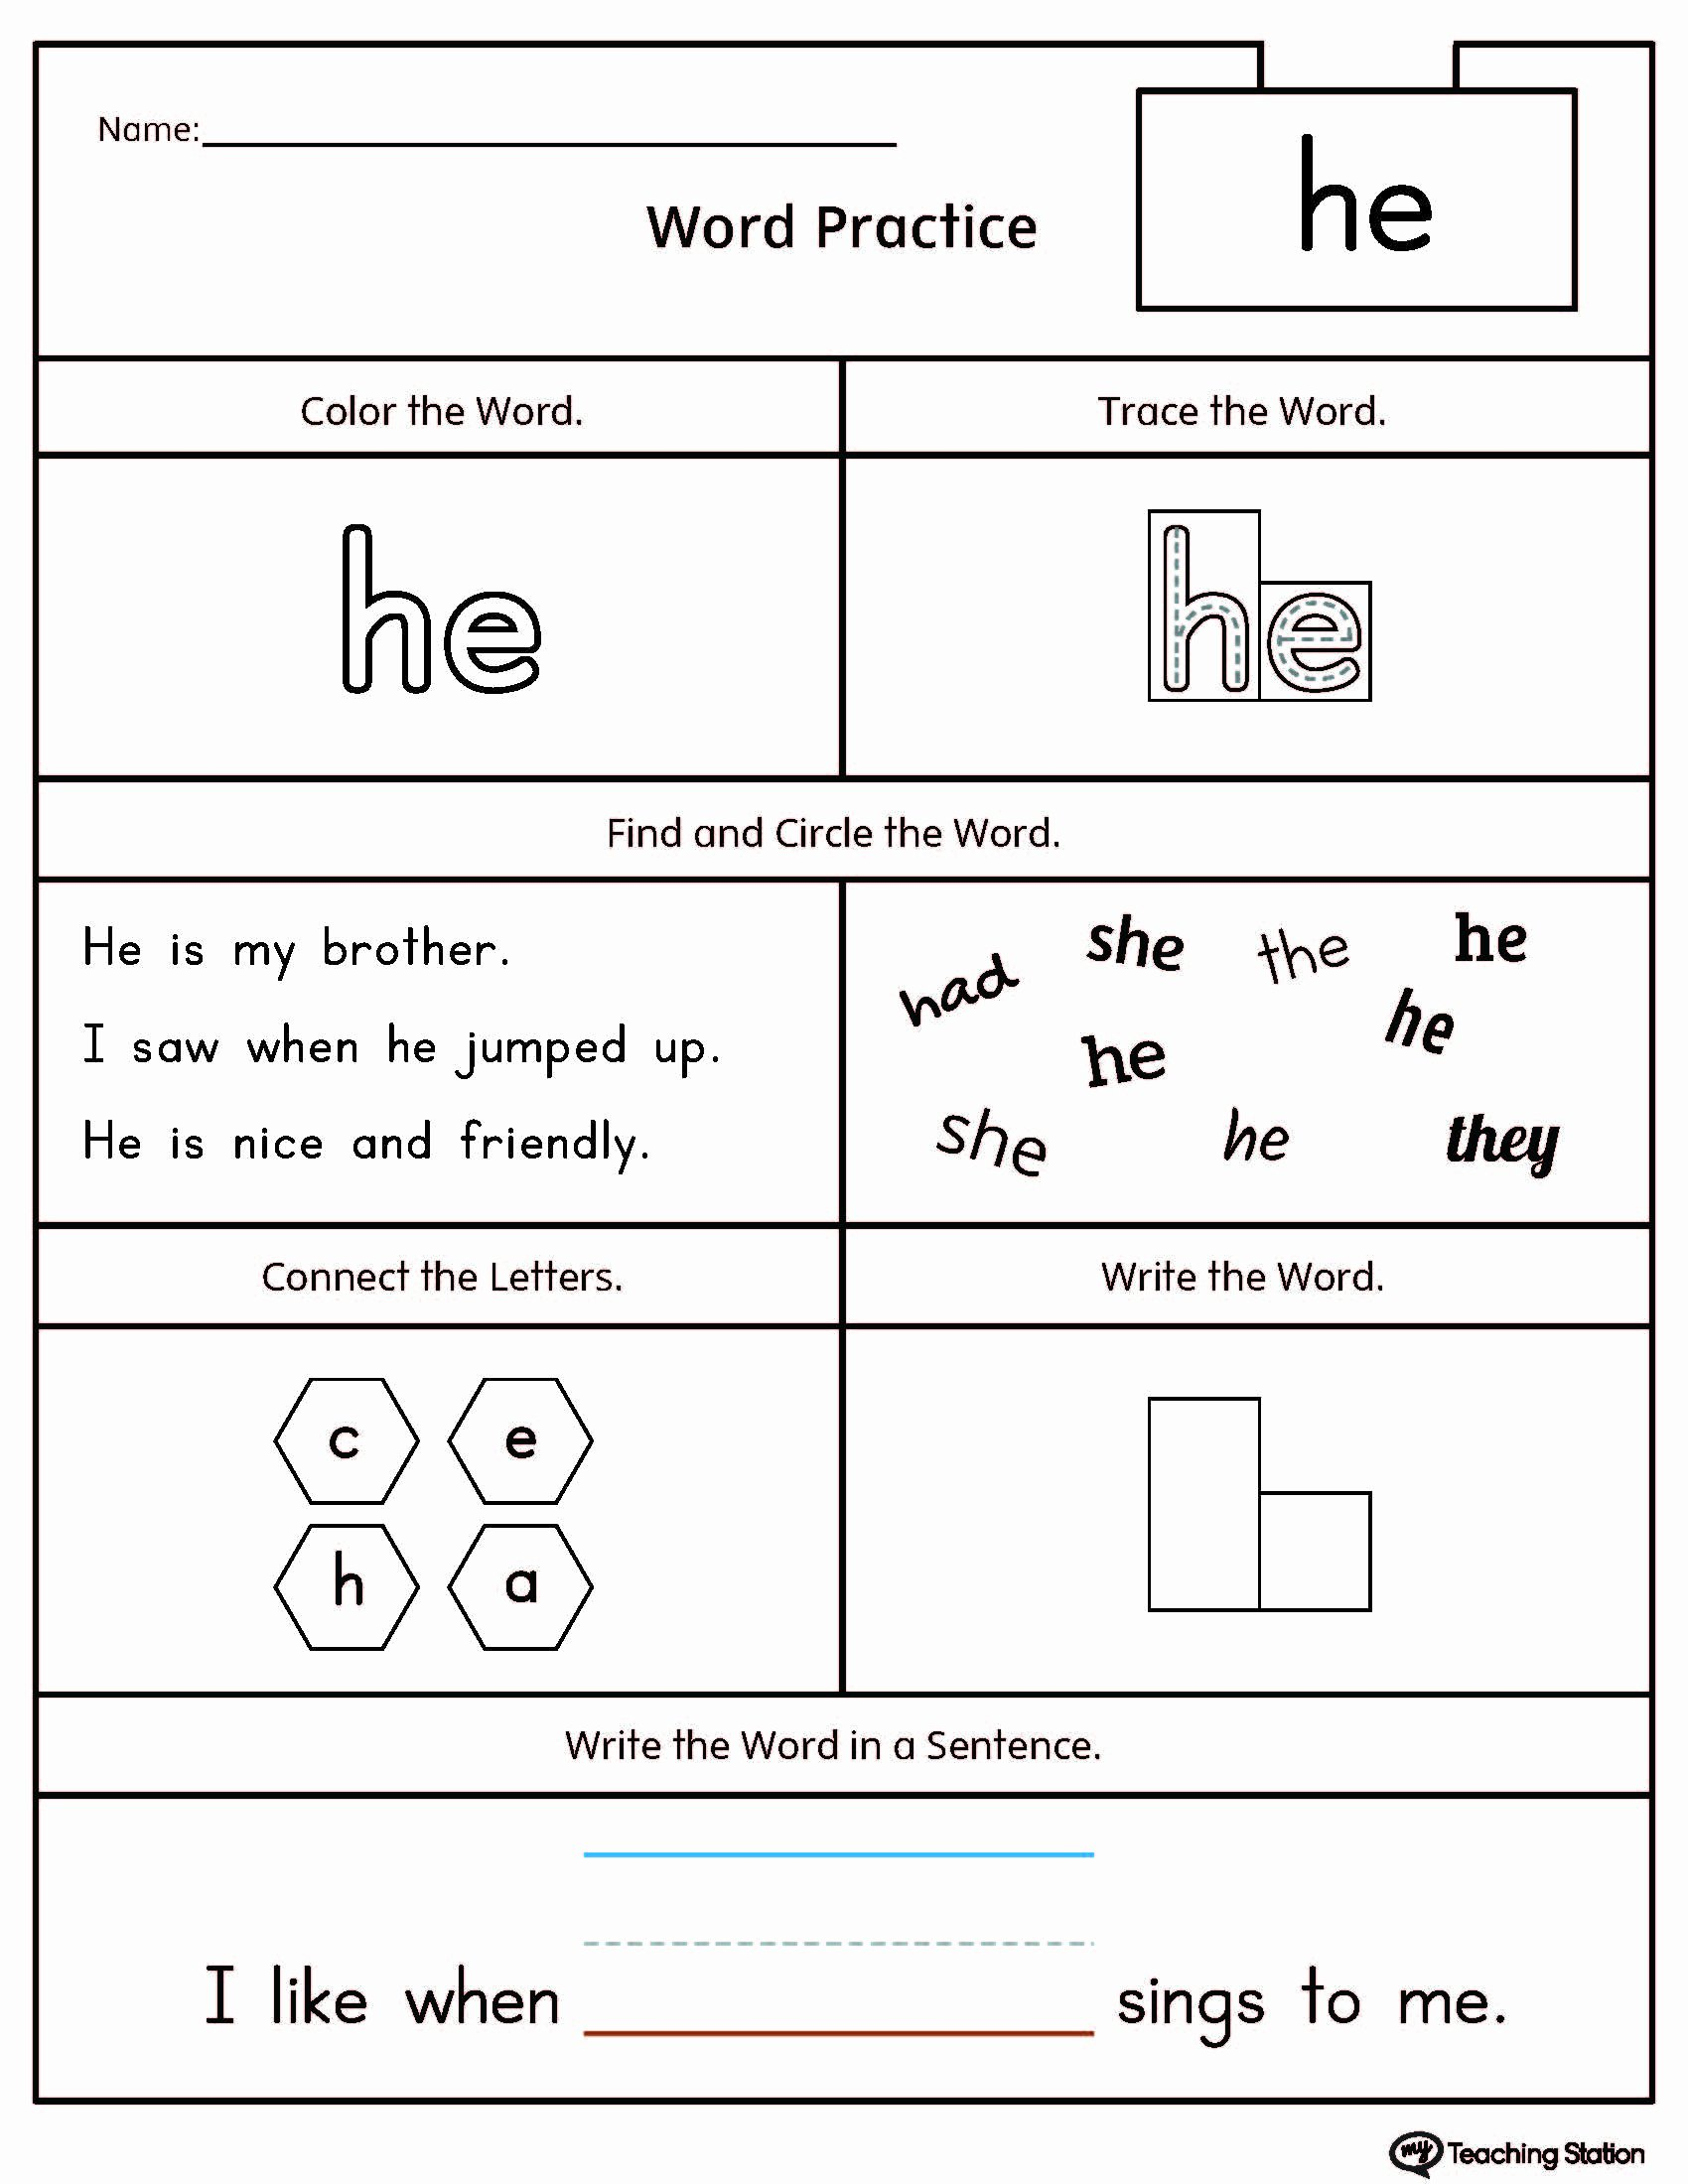 Sight Words Worksheets for Preschoolers Best Of High Frequency Word He Printable Worksheet